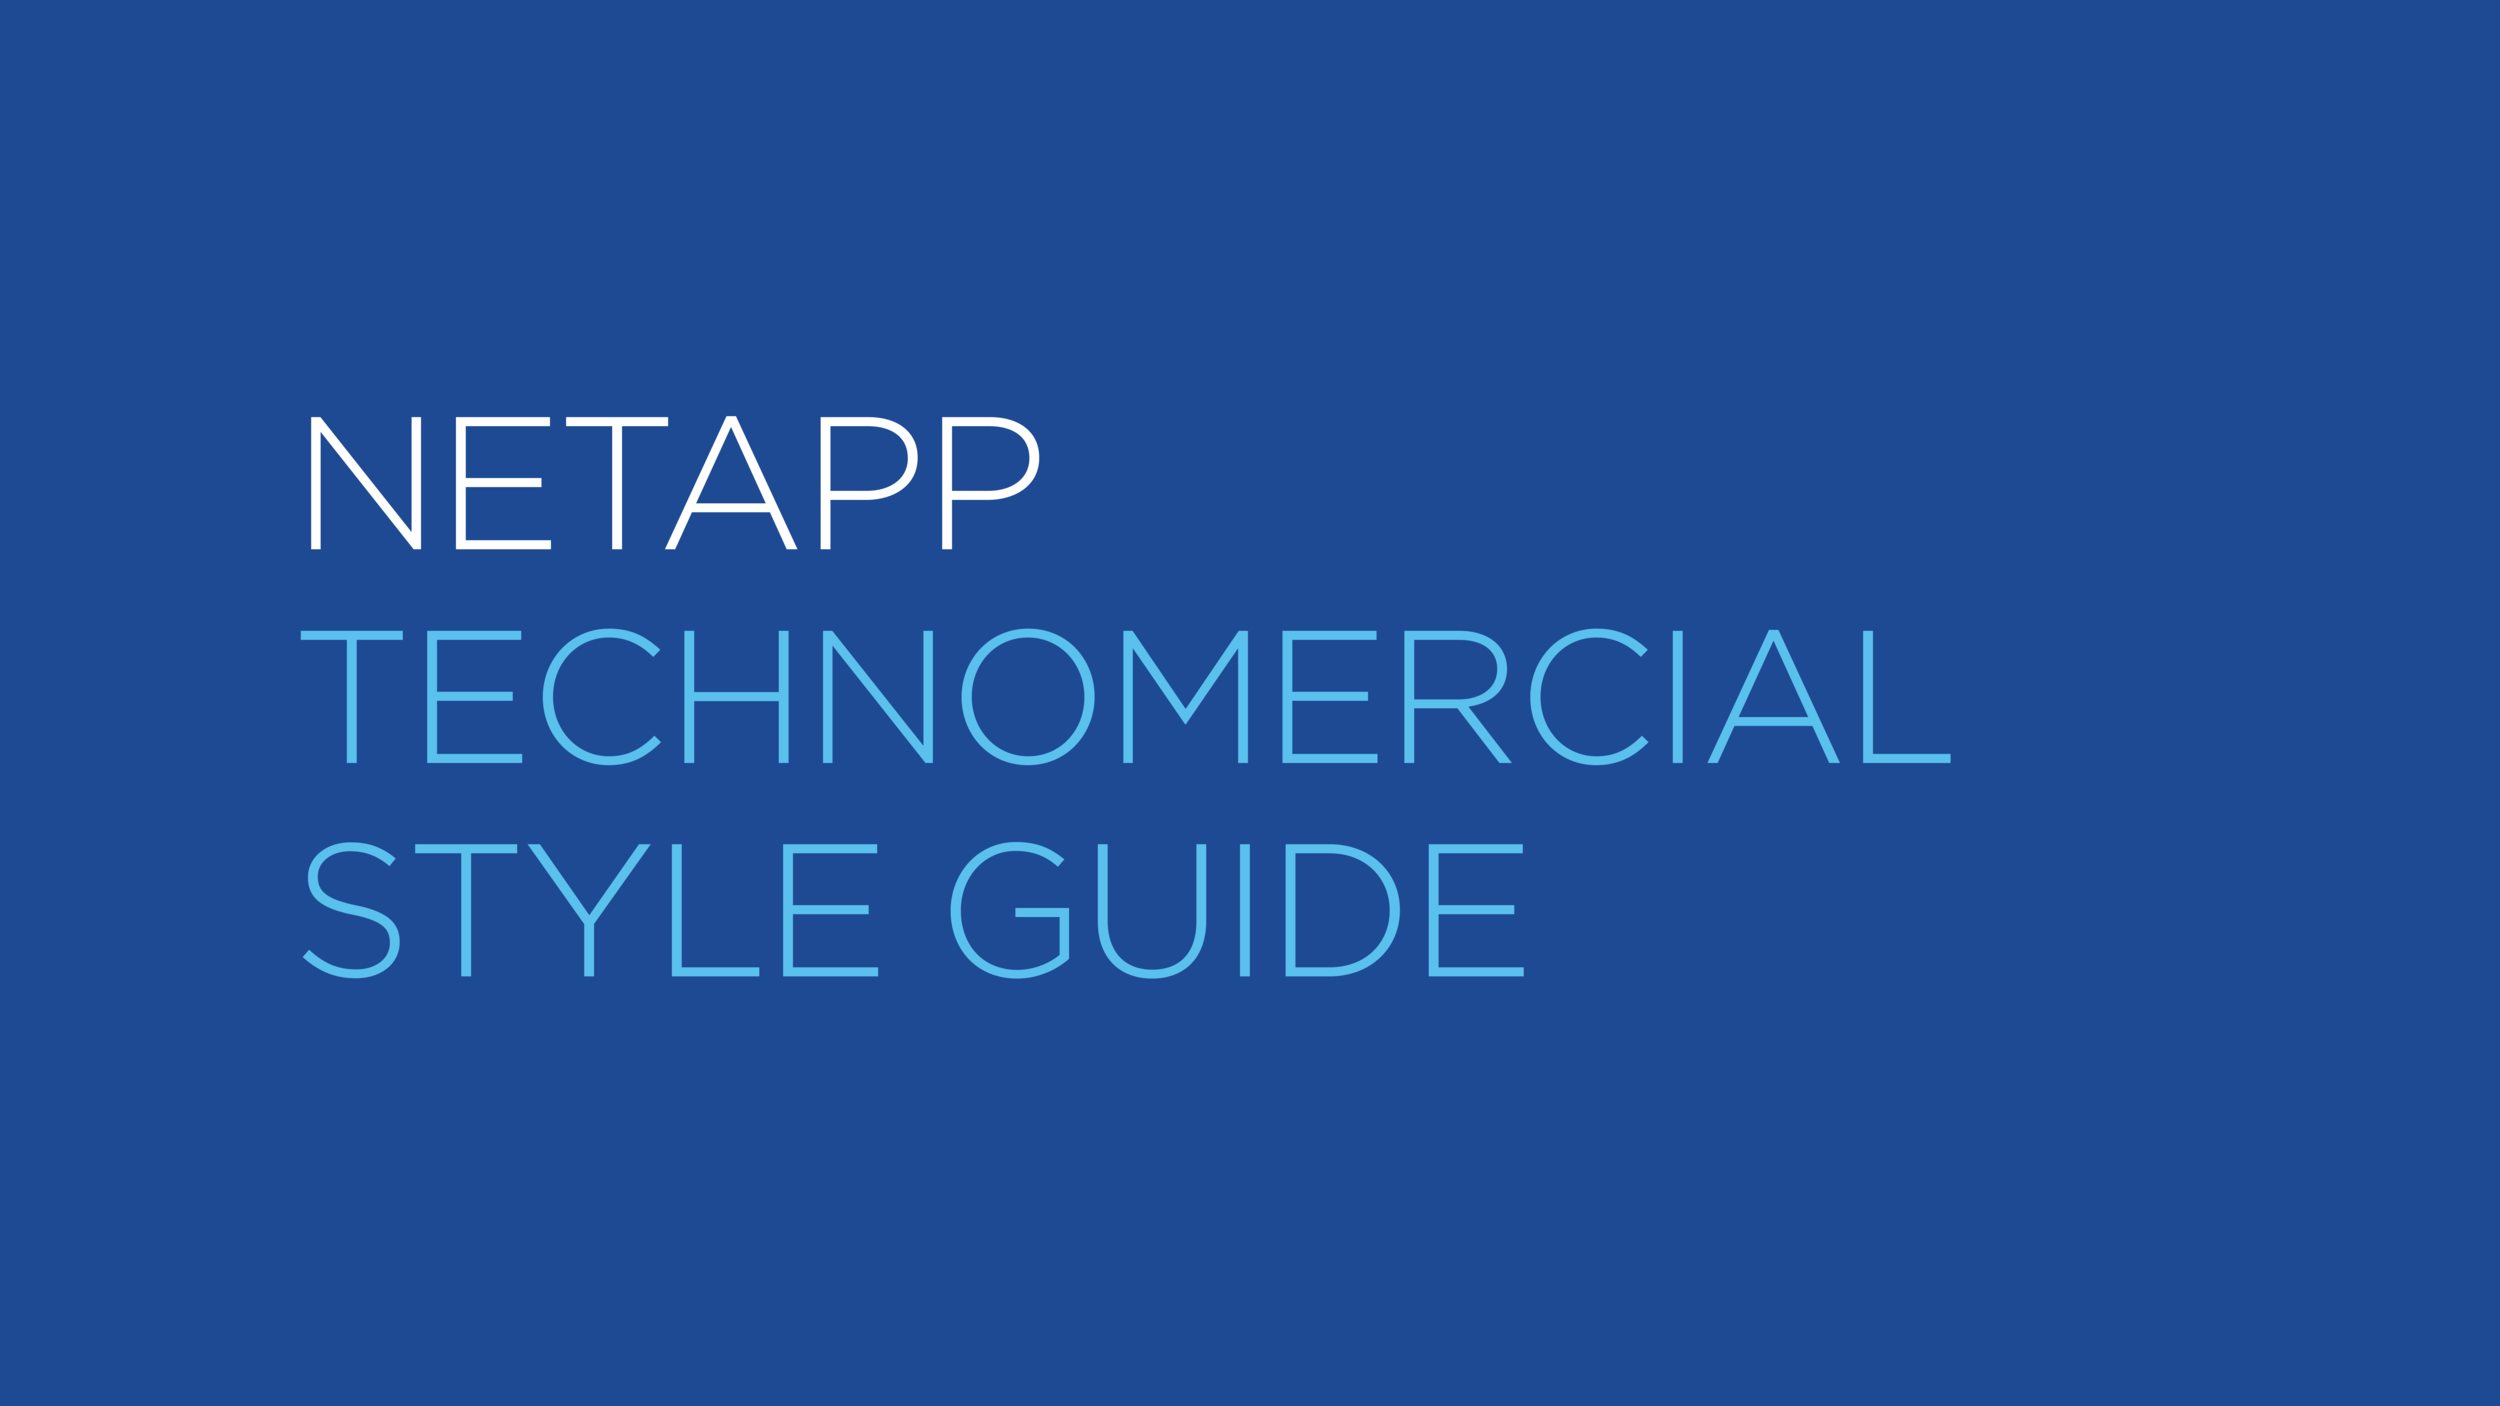 NetApp_Technomercial_Guidelines_01-2.png